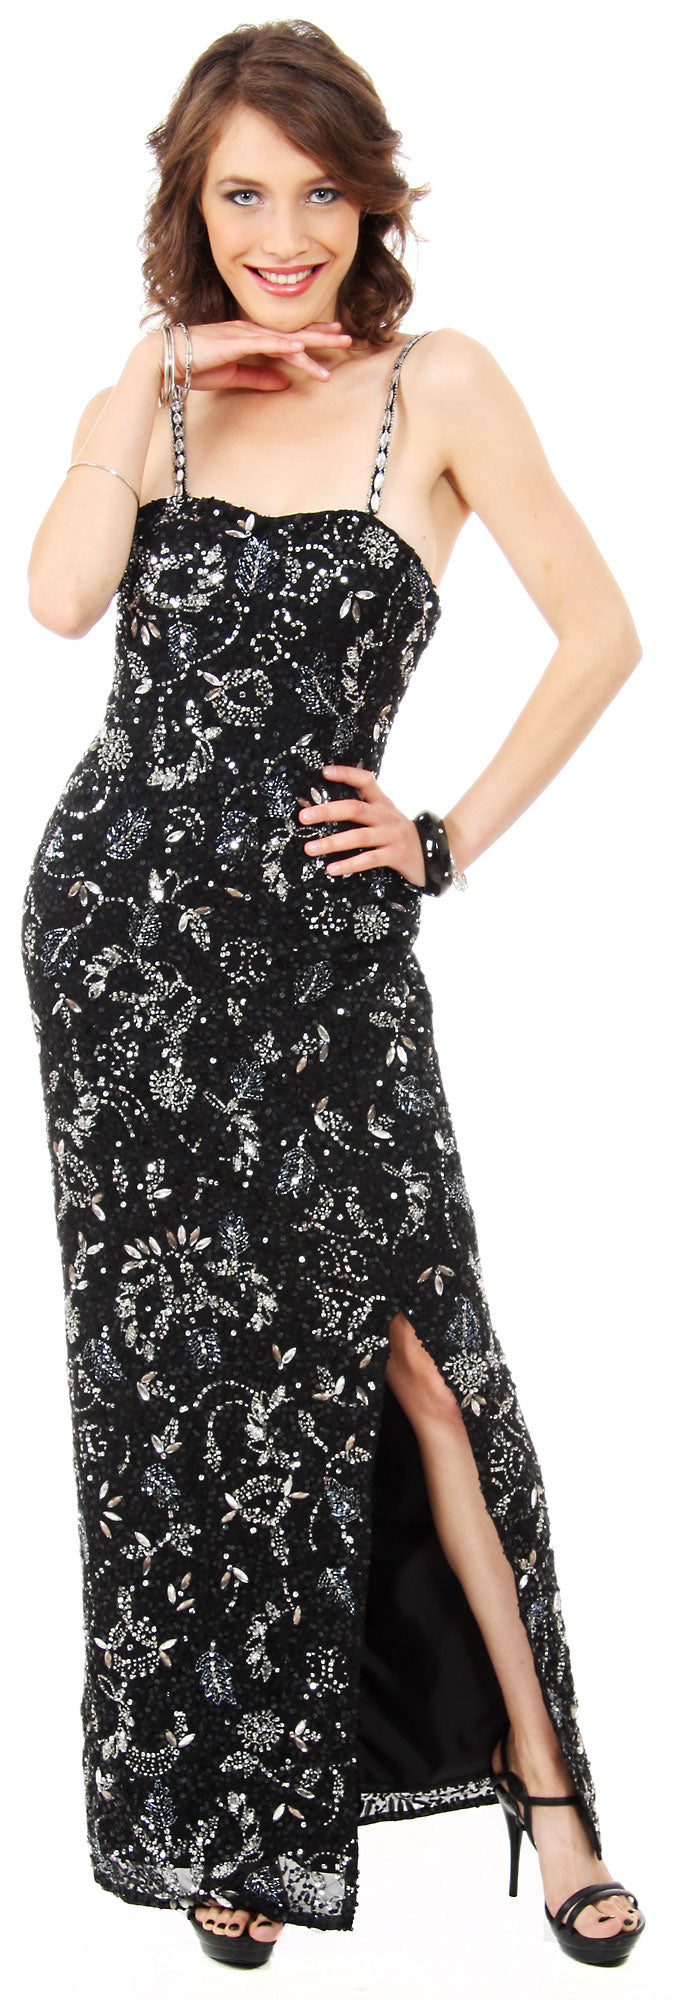 Main image of Strapless Sequins & Rhinestones Long Formal Dress With Slit